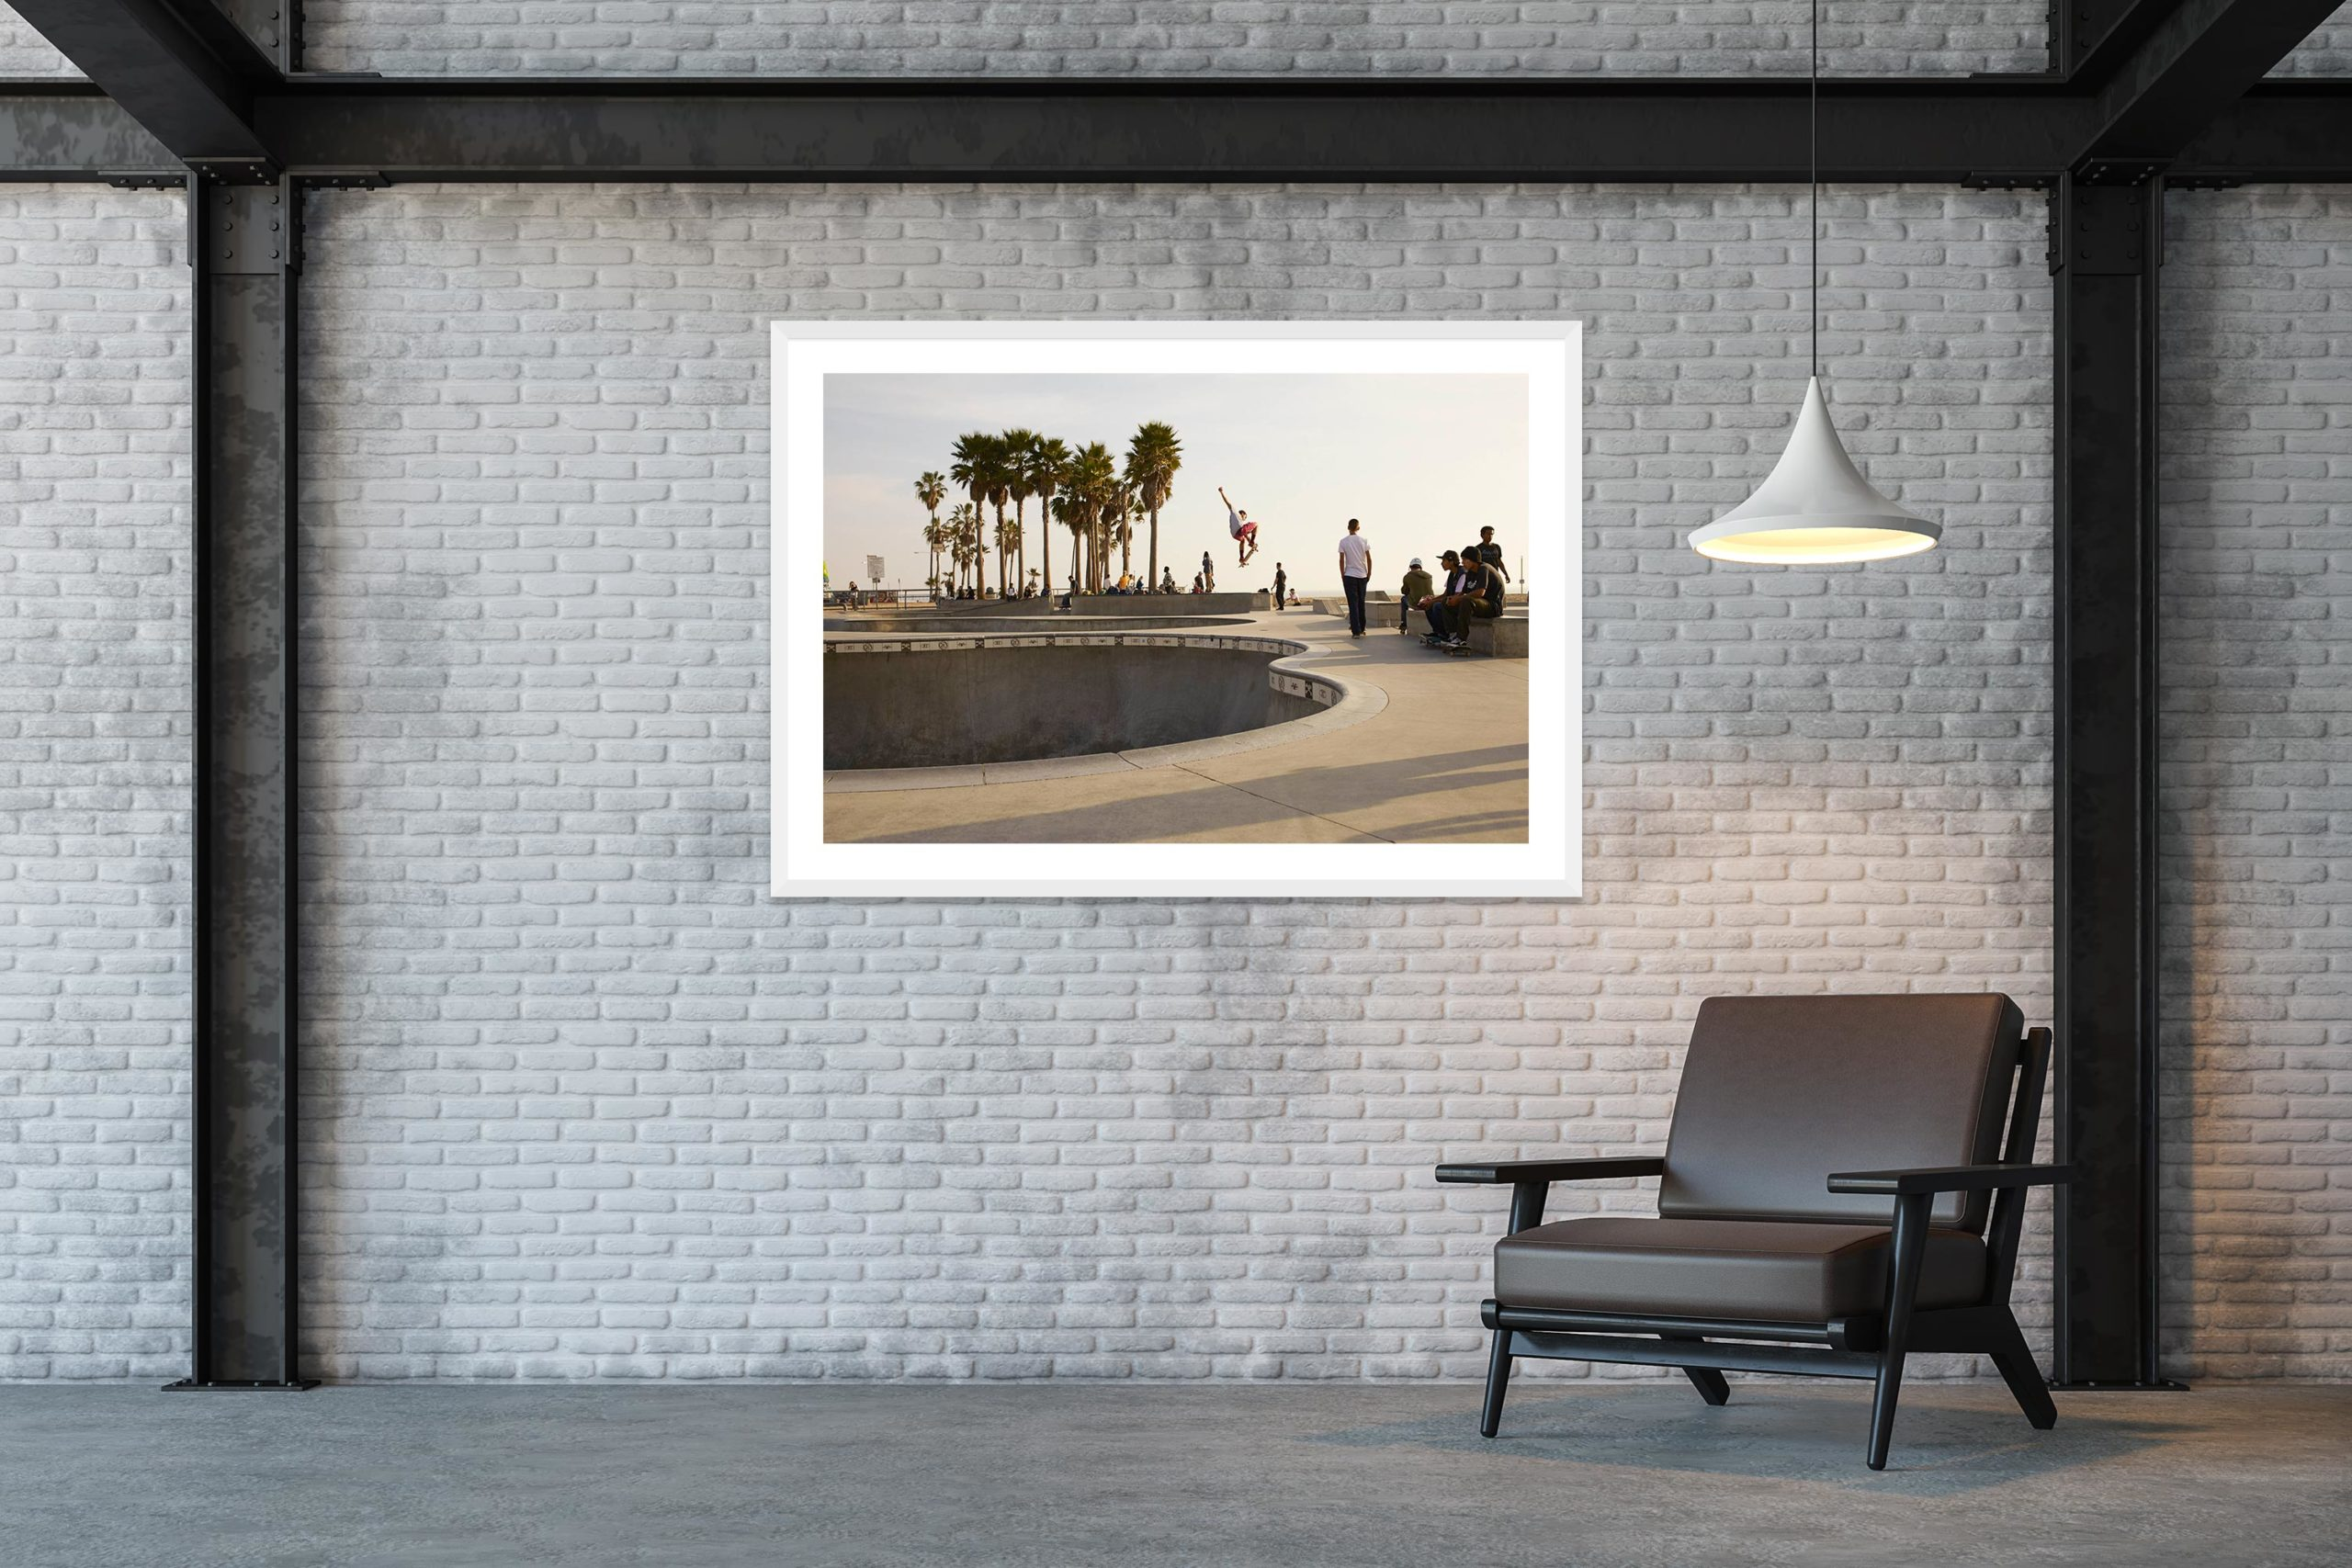 Air - White Frame - Skate Park, Venice Beach Collection - Fine Art Photography by Toby Dixon